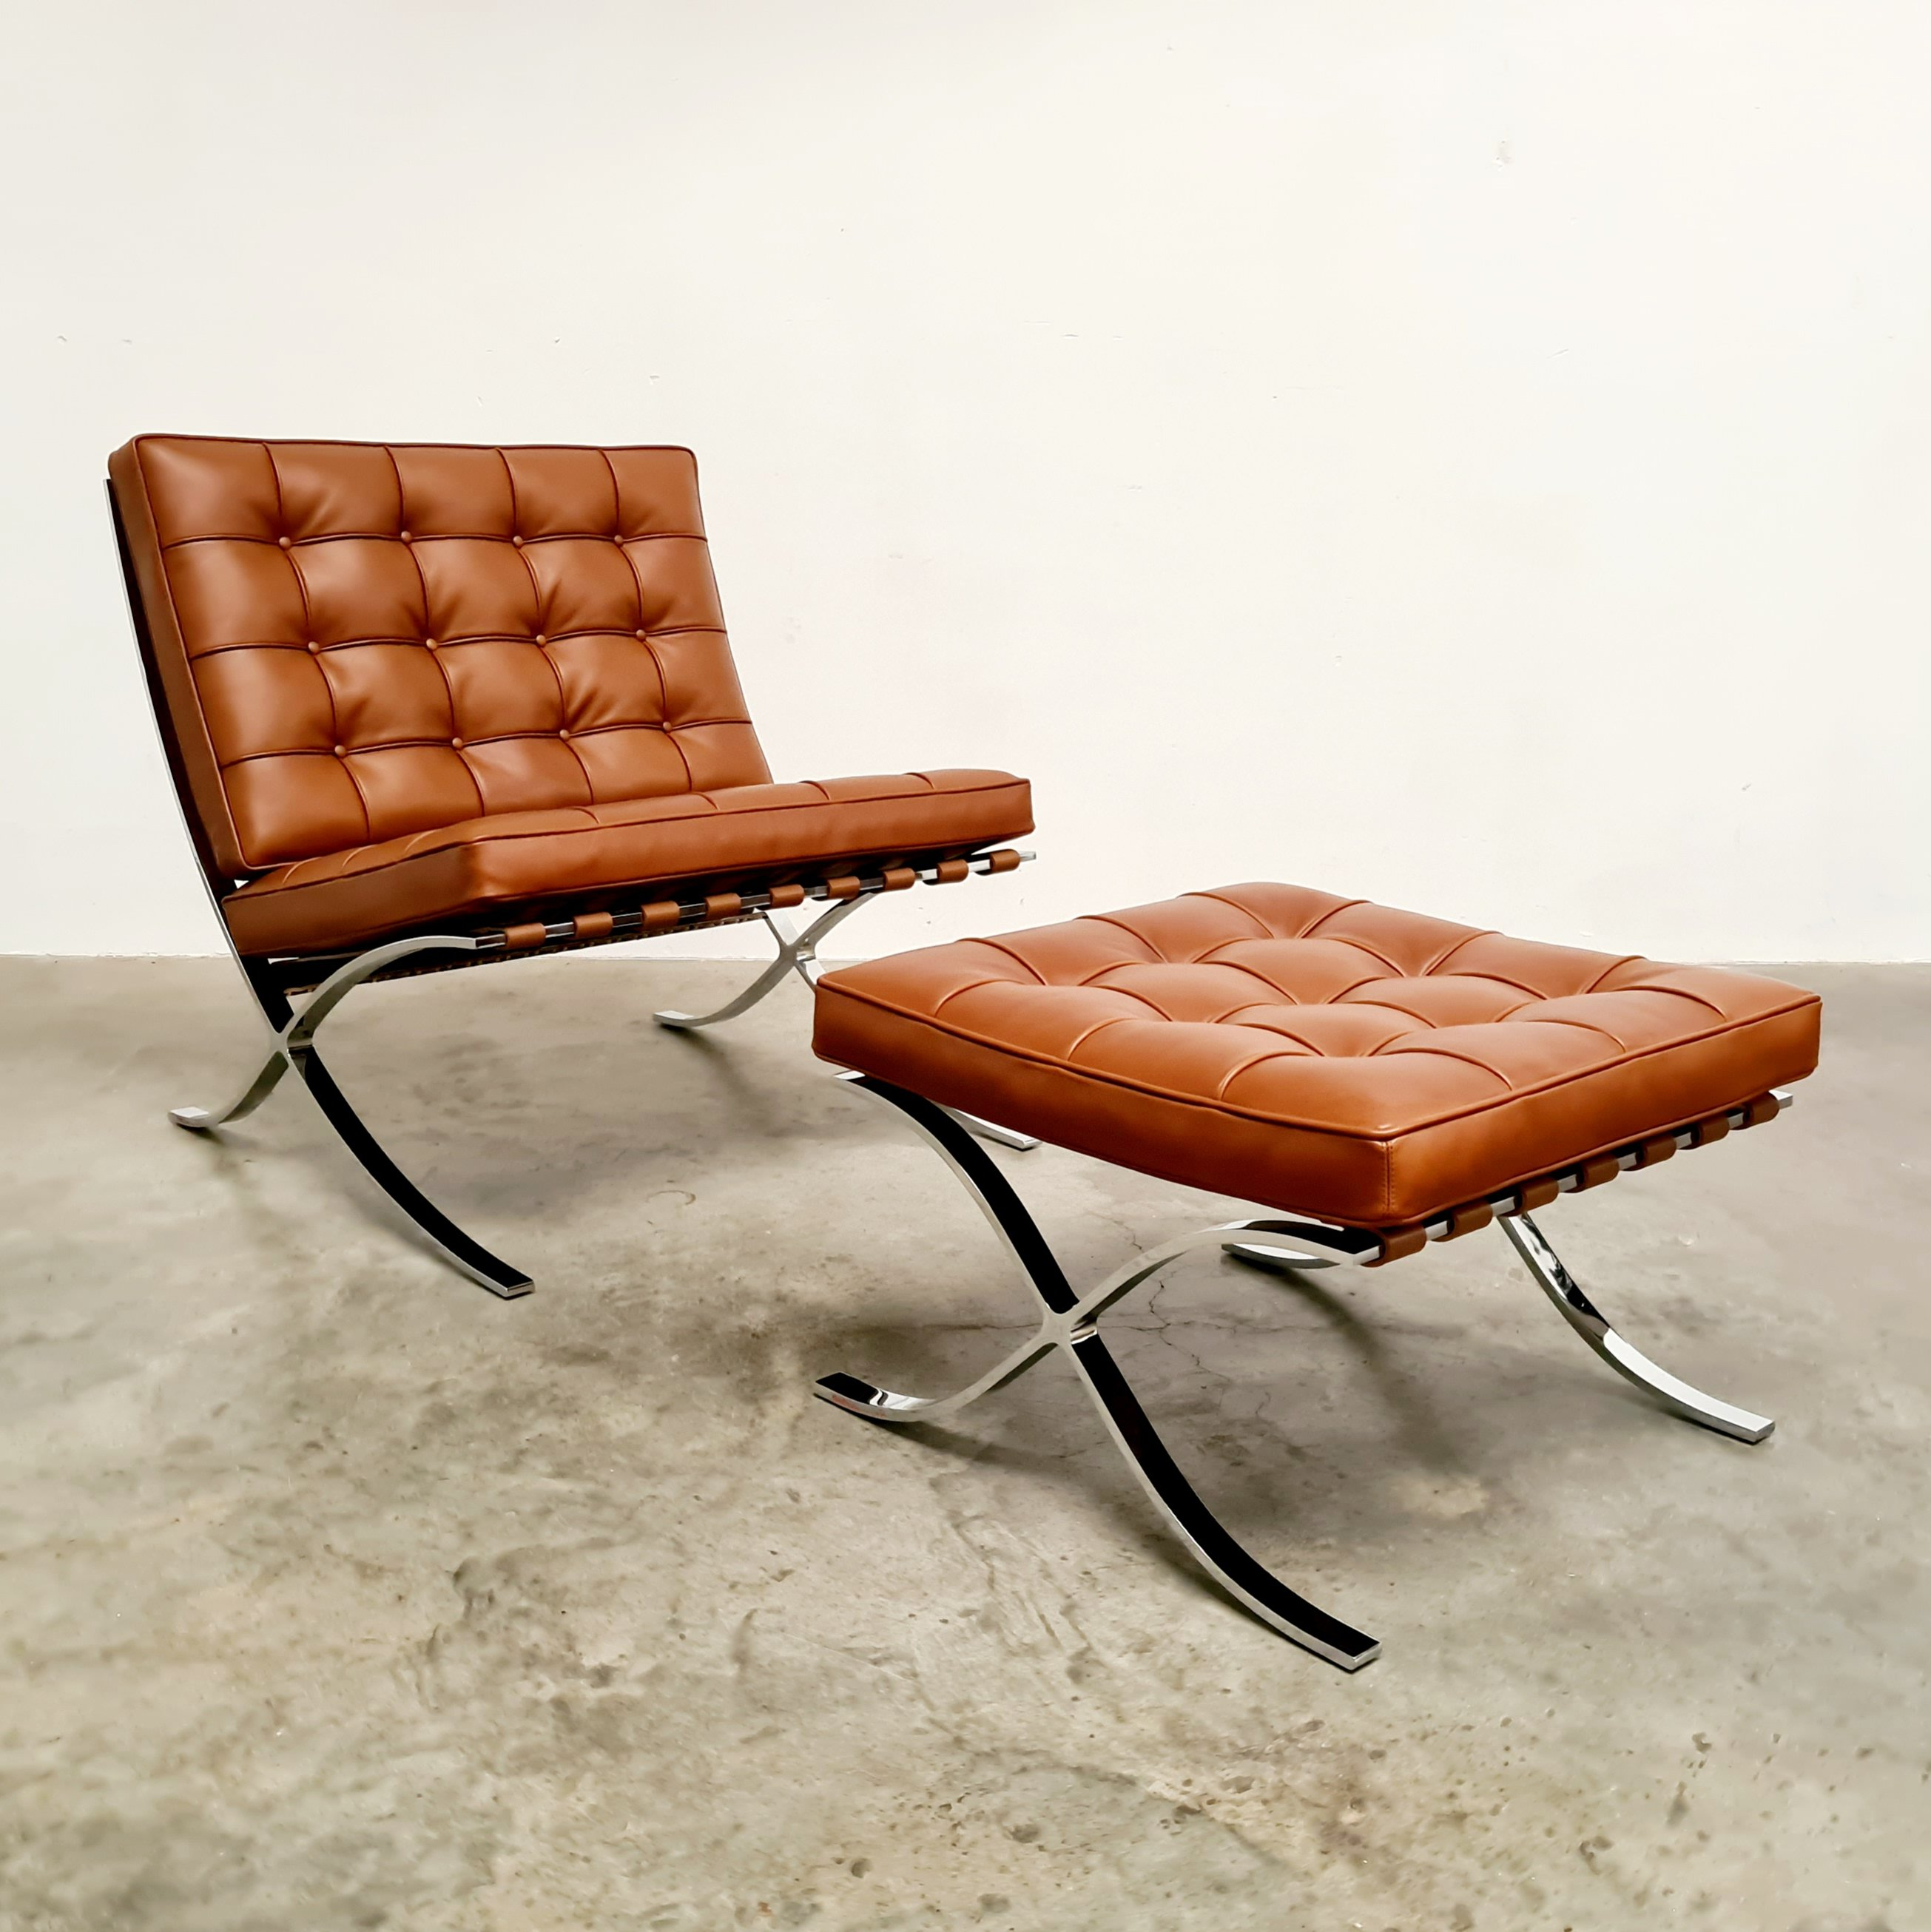 Picture of: Barcelona Lounge Chair By Mies Van Der Rohe In Cognac Leather 138226